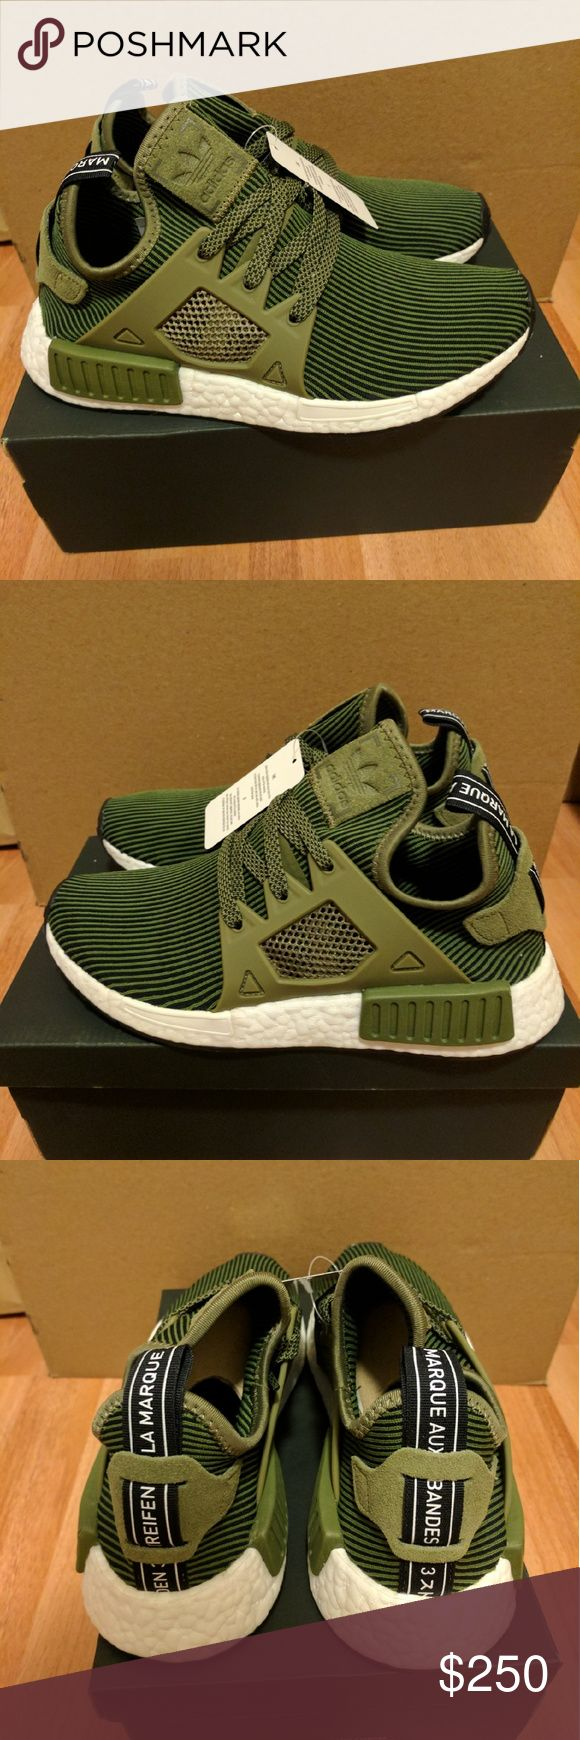 NEW ADIDAS NMD PRIMEKNIT XR1 OLIVE GREEN SIZE 7 Newest colorway for adidas NMD, sold out everywhere!  Men Size 5 Women size 7  Deadstock.  100% authentic.  Will be shipped with original box and protection box.  No trades.  Price is firm.  No returns for incorrect size, size is as described in description  Check out my account for more shoes and sizes!  Tags: Adidas, Jordan, Nike, retro, boost, Yeezy, ultra boost, prime knit, supreme, make up, contacts Adidas Shoes